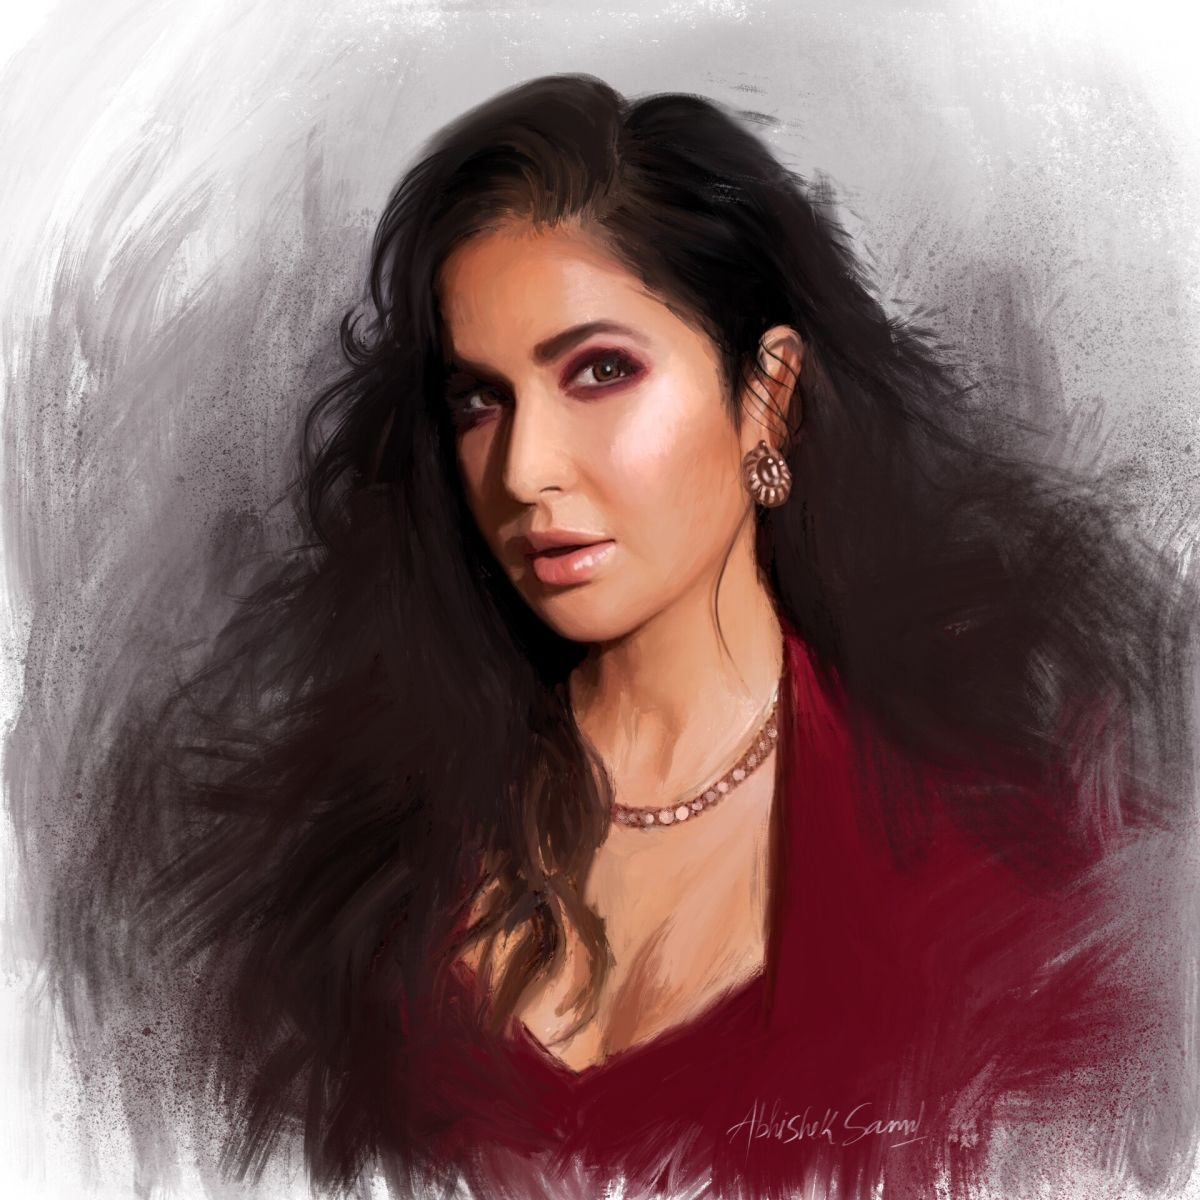 digital painting celebrity portrait katrina kaif by abhishek samal